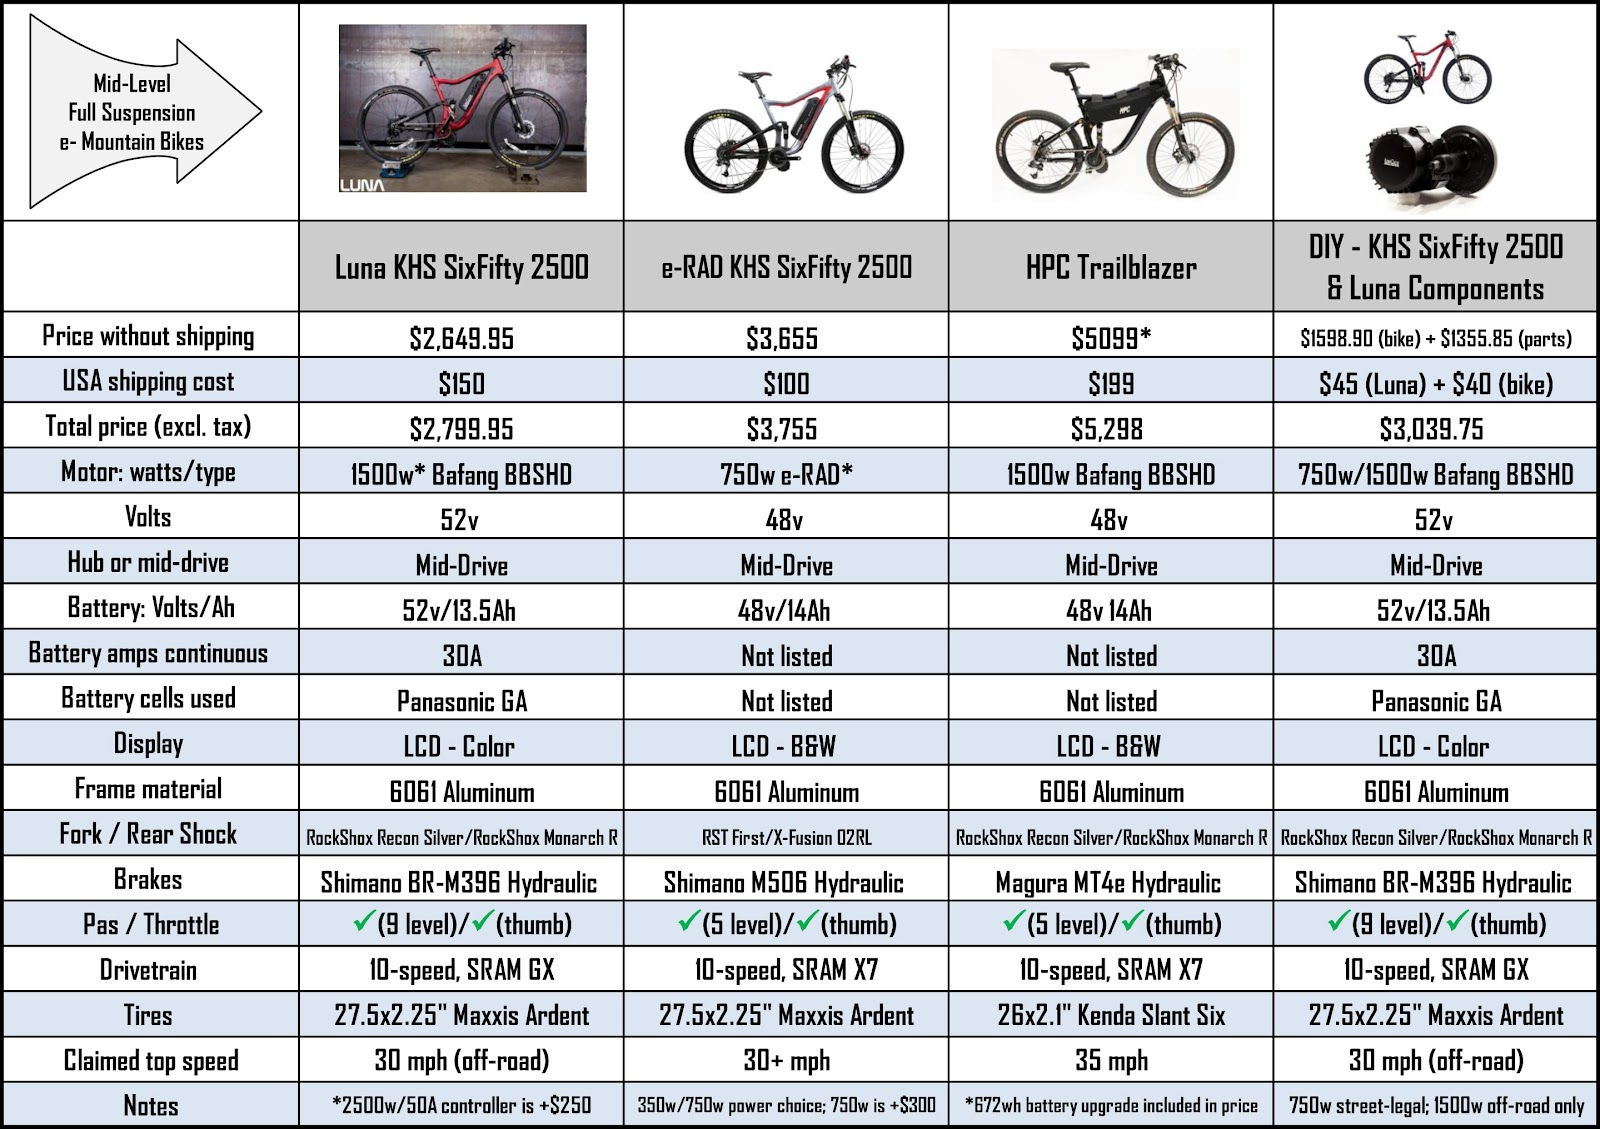 It's a comparison of features, specs, and pricing – the data culled from many public sources – for some groups of similar bikes.